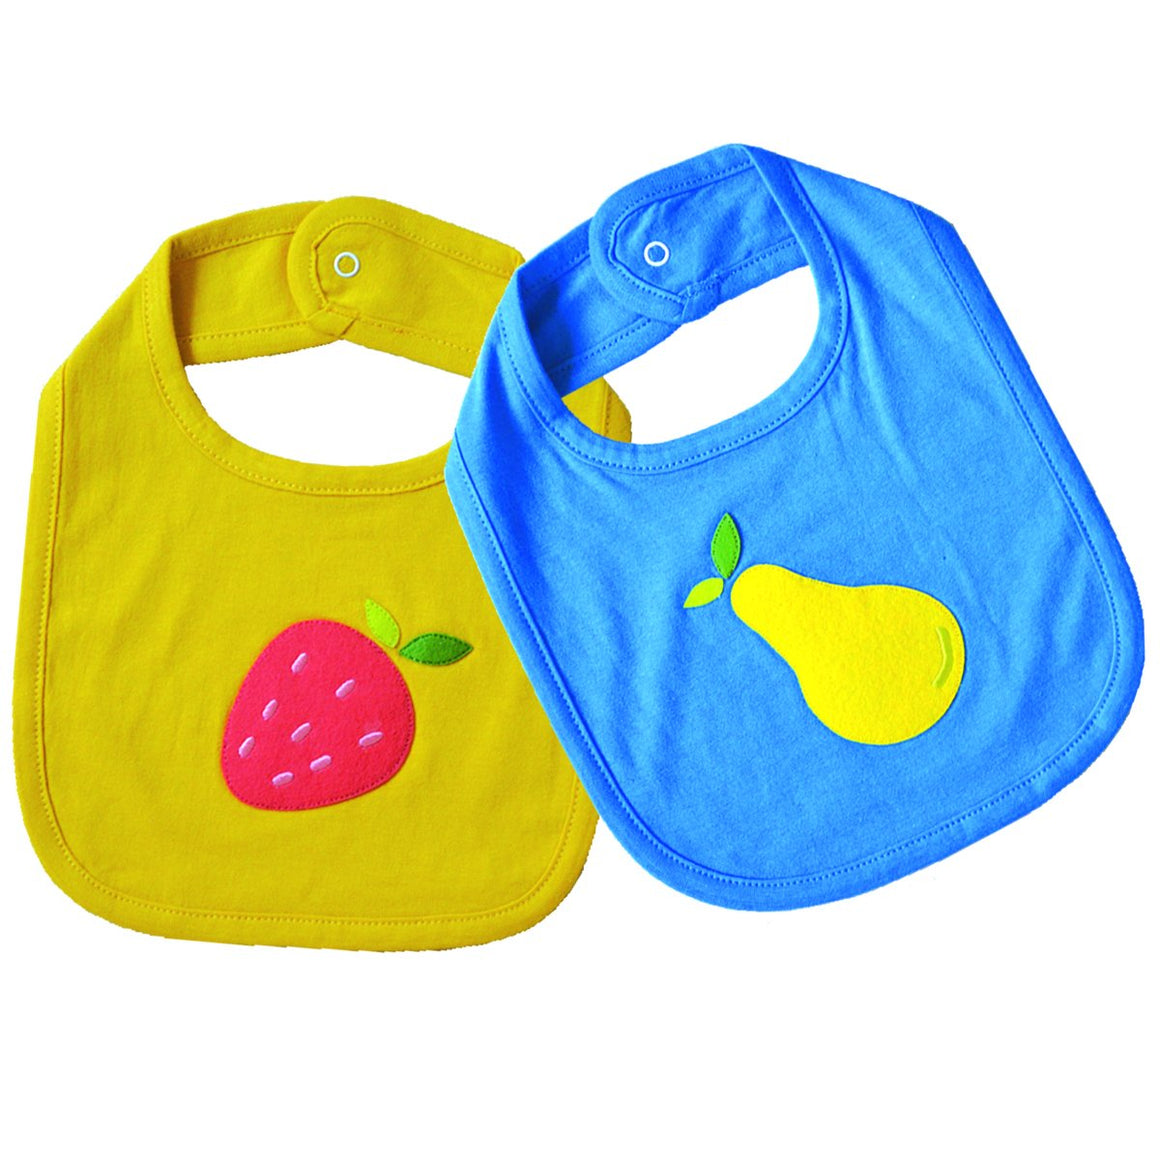 Juicy Fruit - Baby Bibs Set | Free Shipping - Shumee